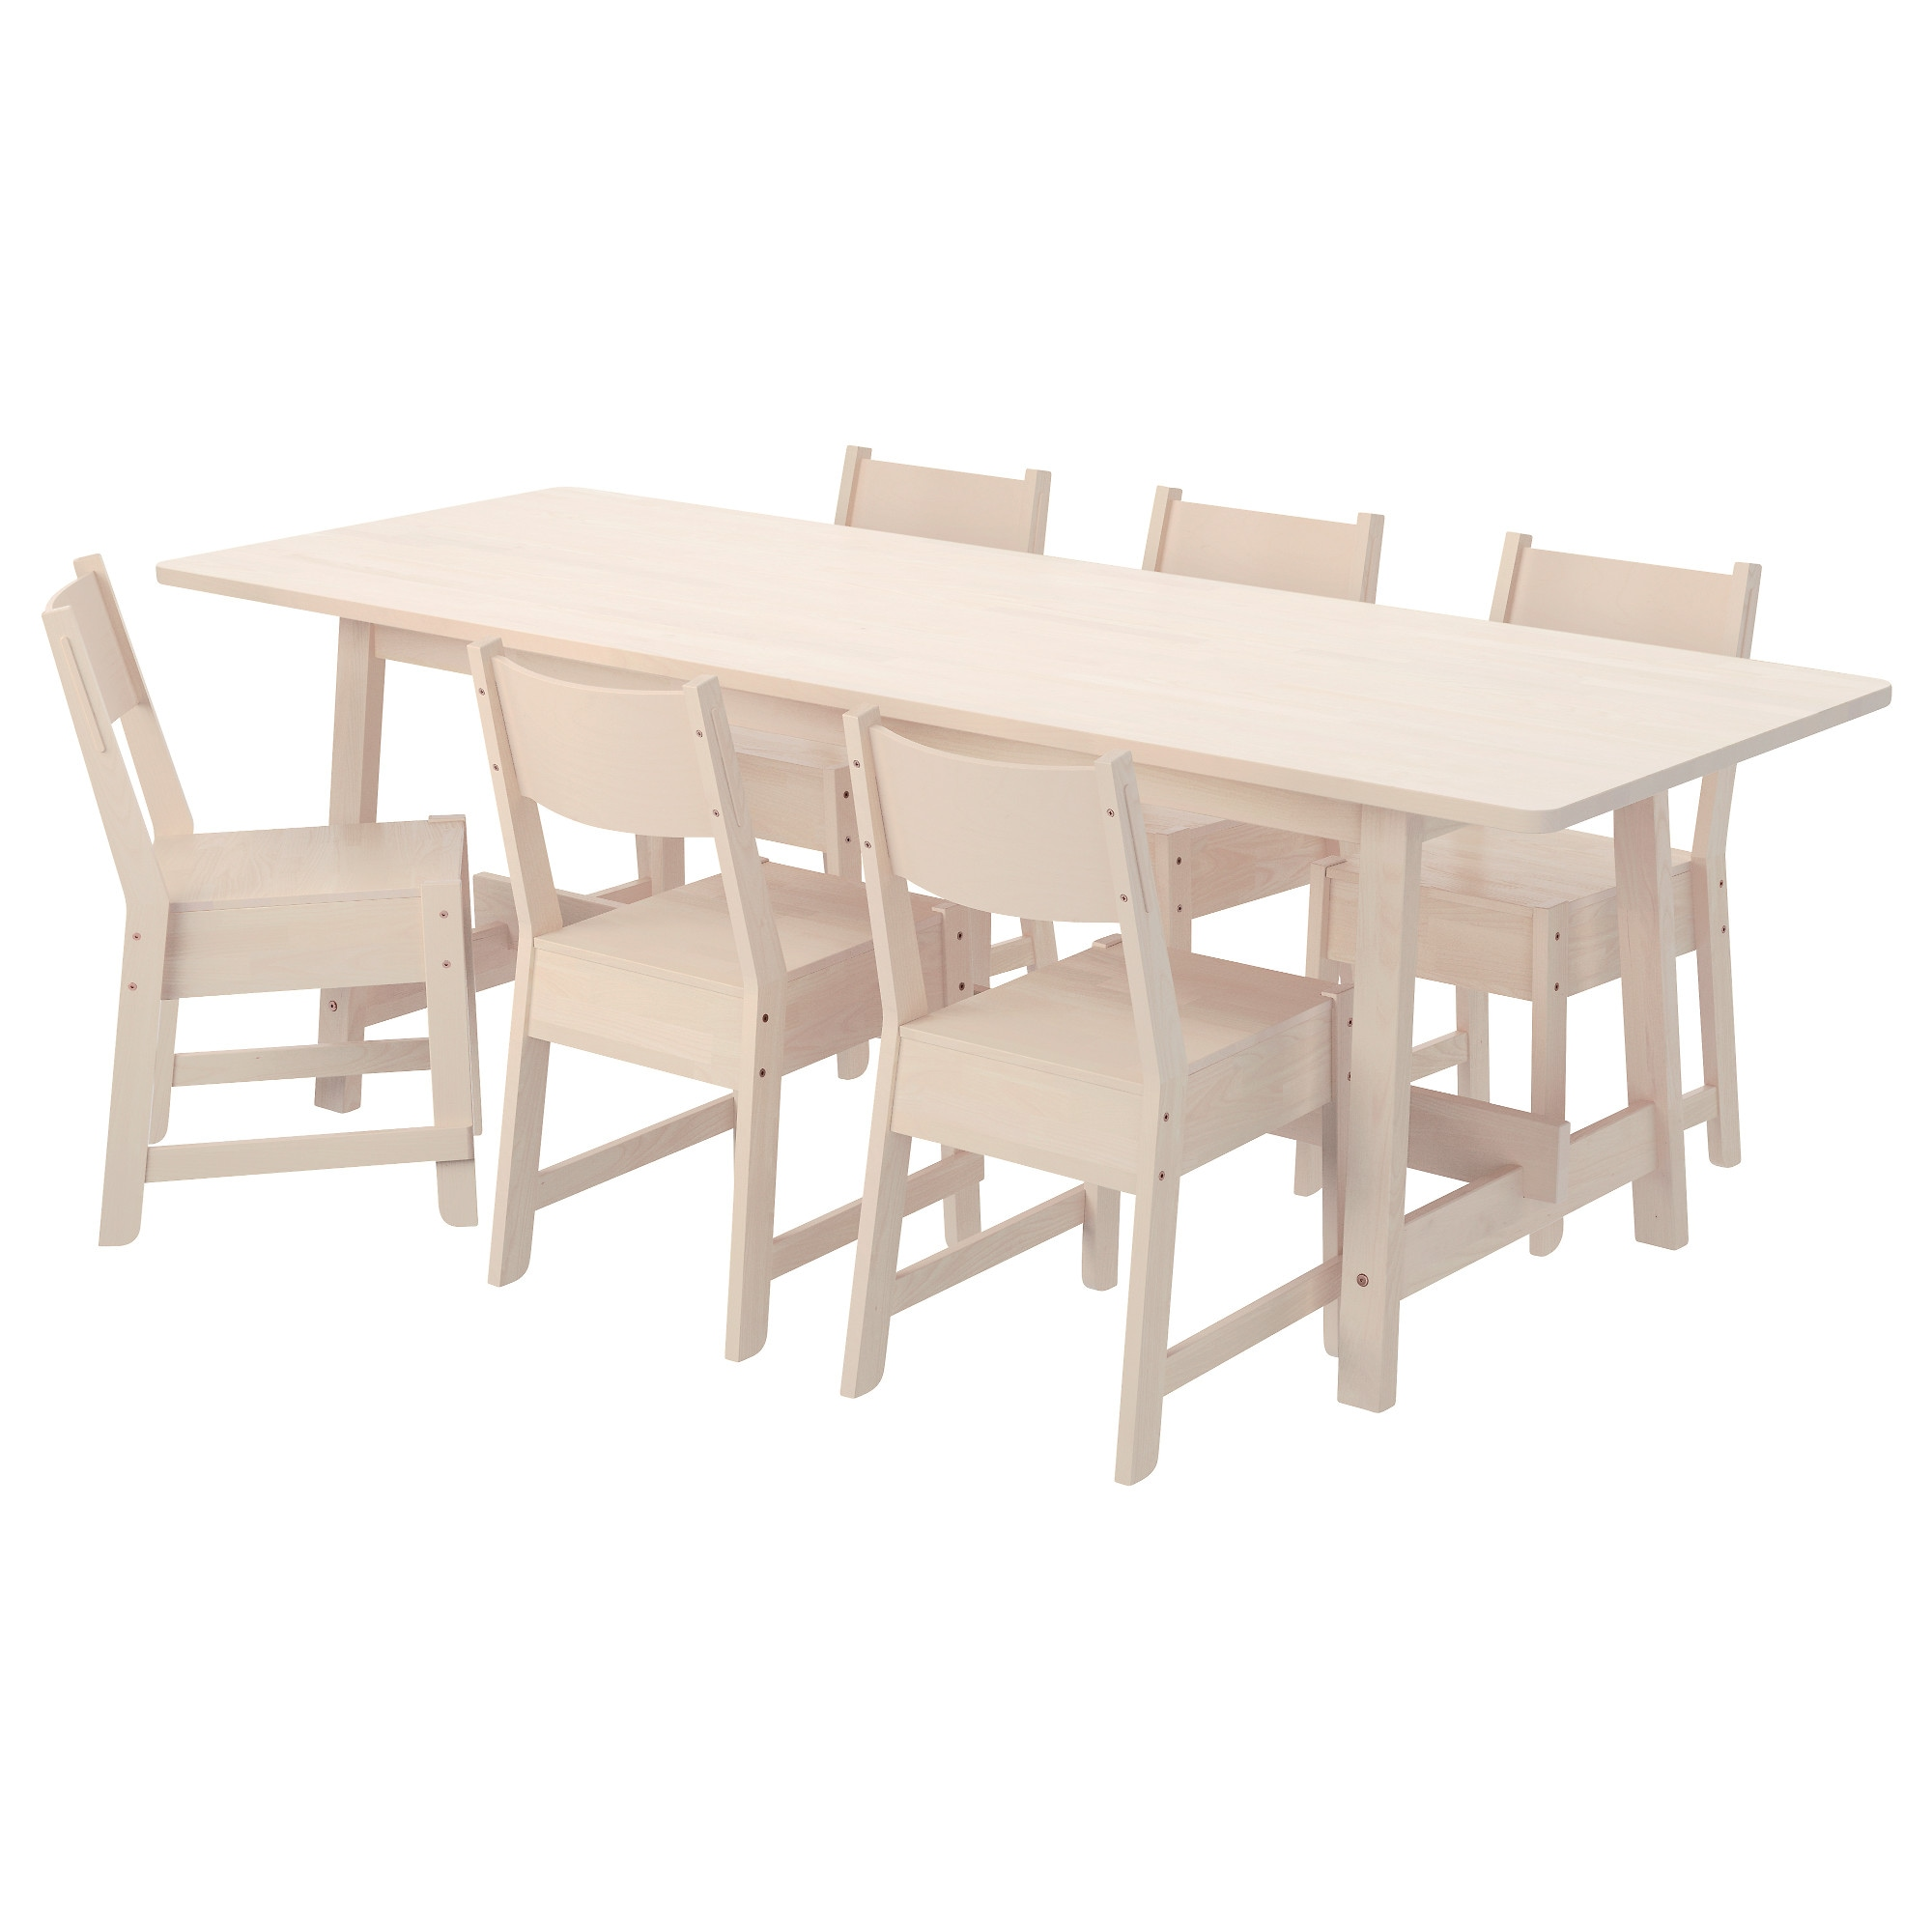 norrker norrker table and 6 chairs white birch white birch length 86